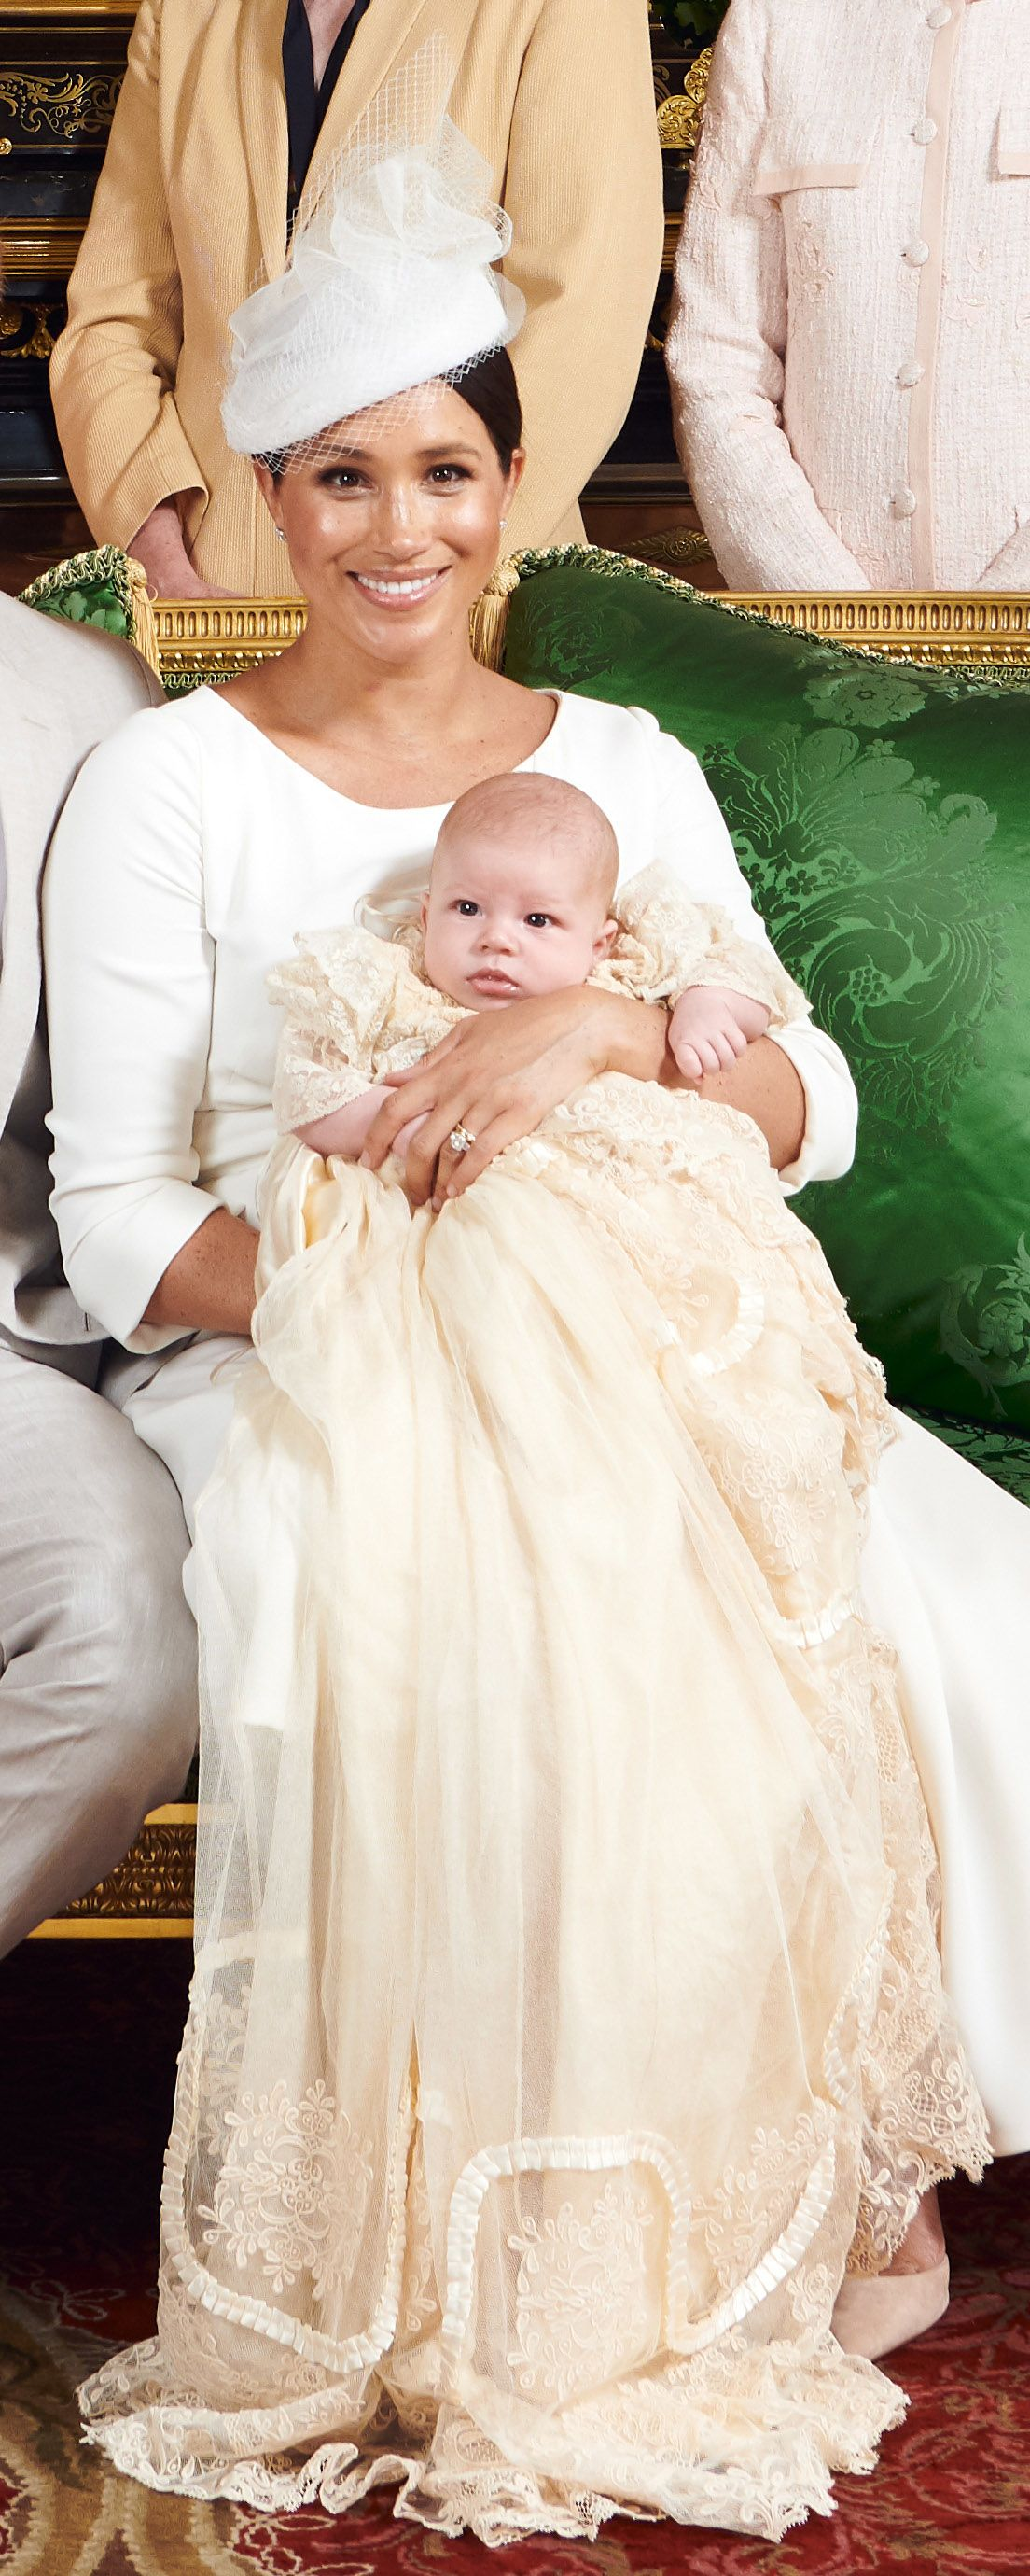 6 Jul 2019 Meghan Duchess Of Sussex With Her Son Archie Harrison Mountbatten Windsor Following Hi Meghan Markle Style Princess Meghan Prince Harry And Megan